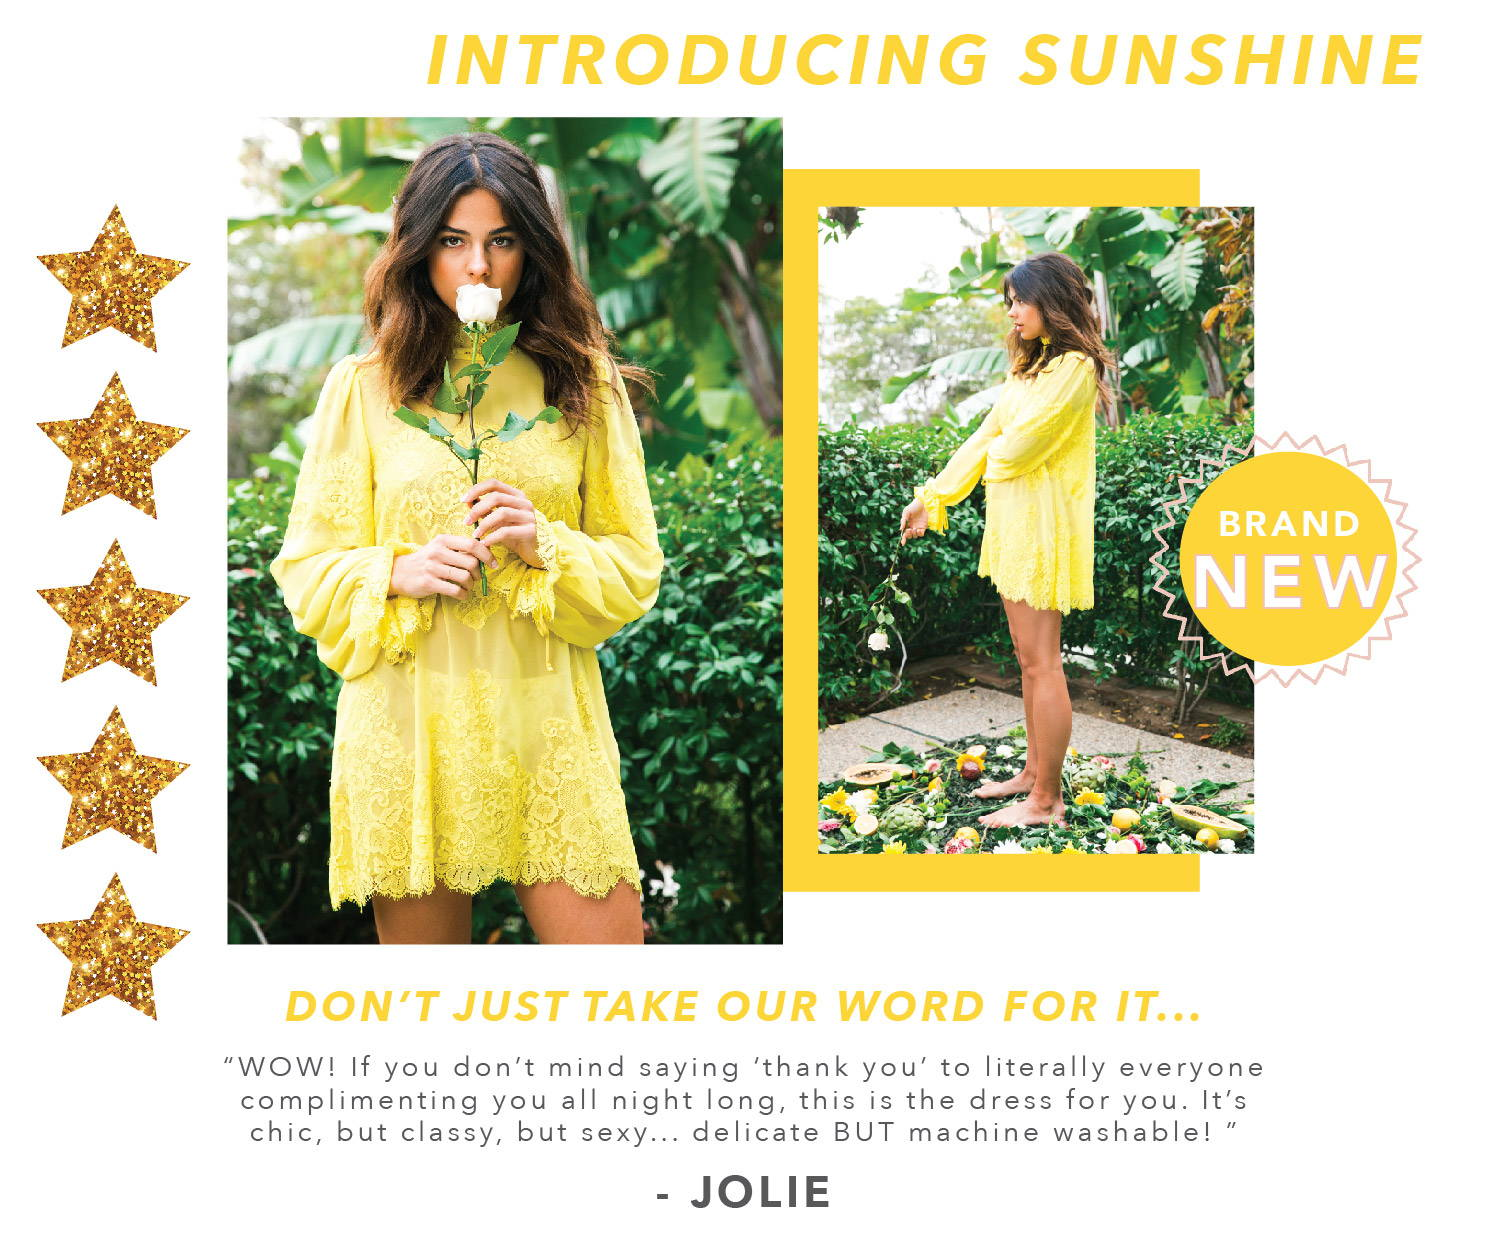 sunshine queen 4 a day dress we are hah yellow lace chiffon dress